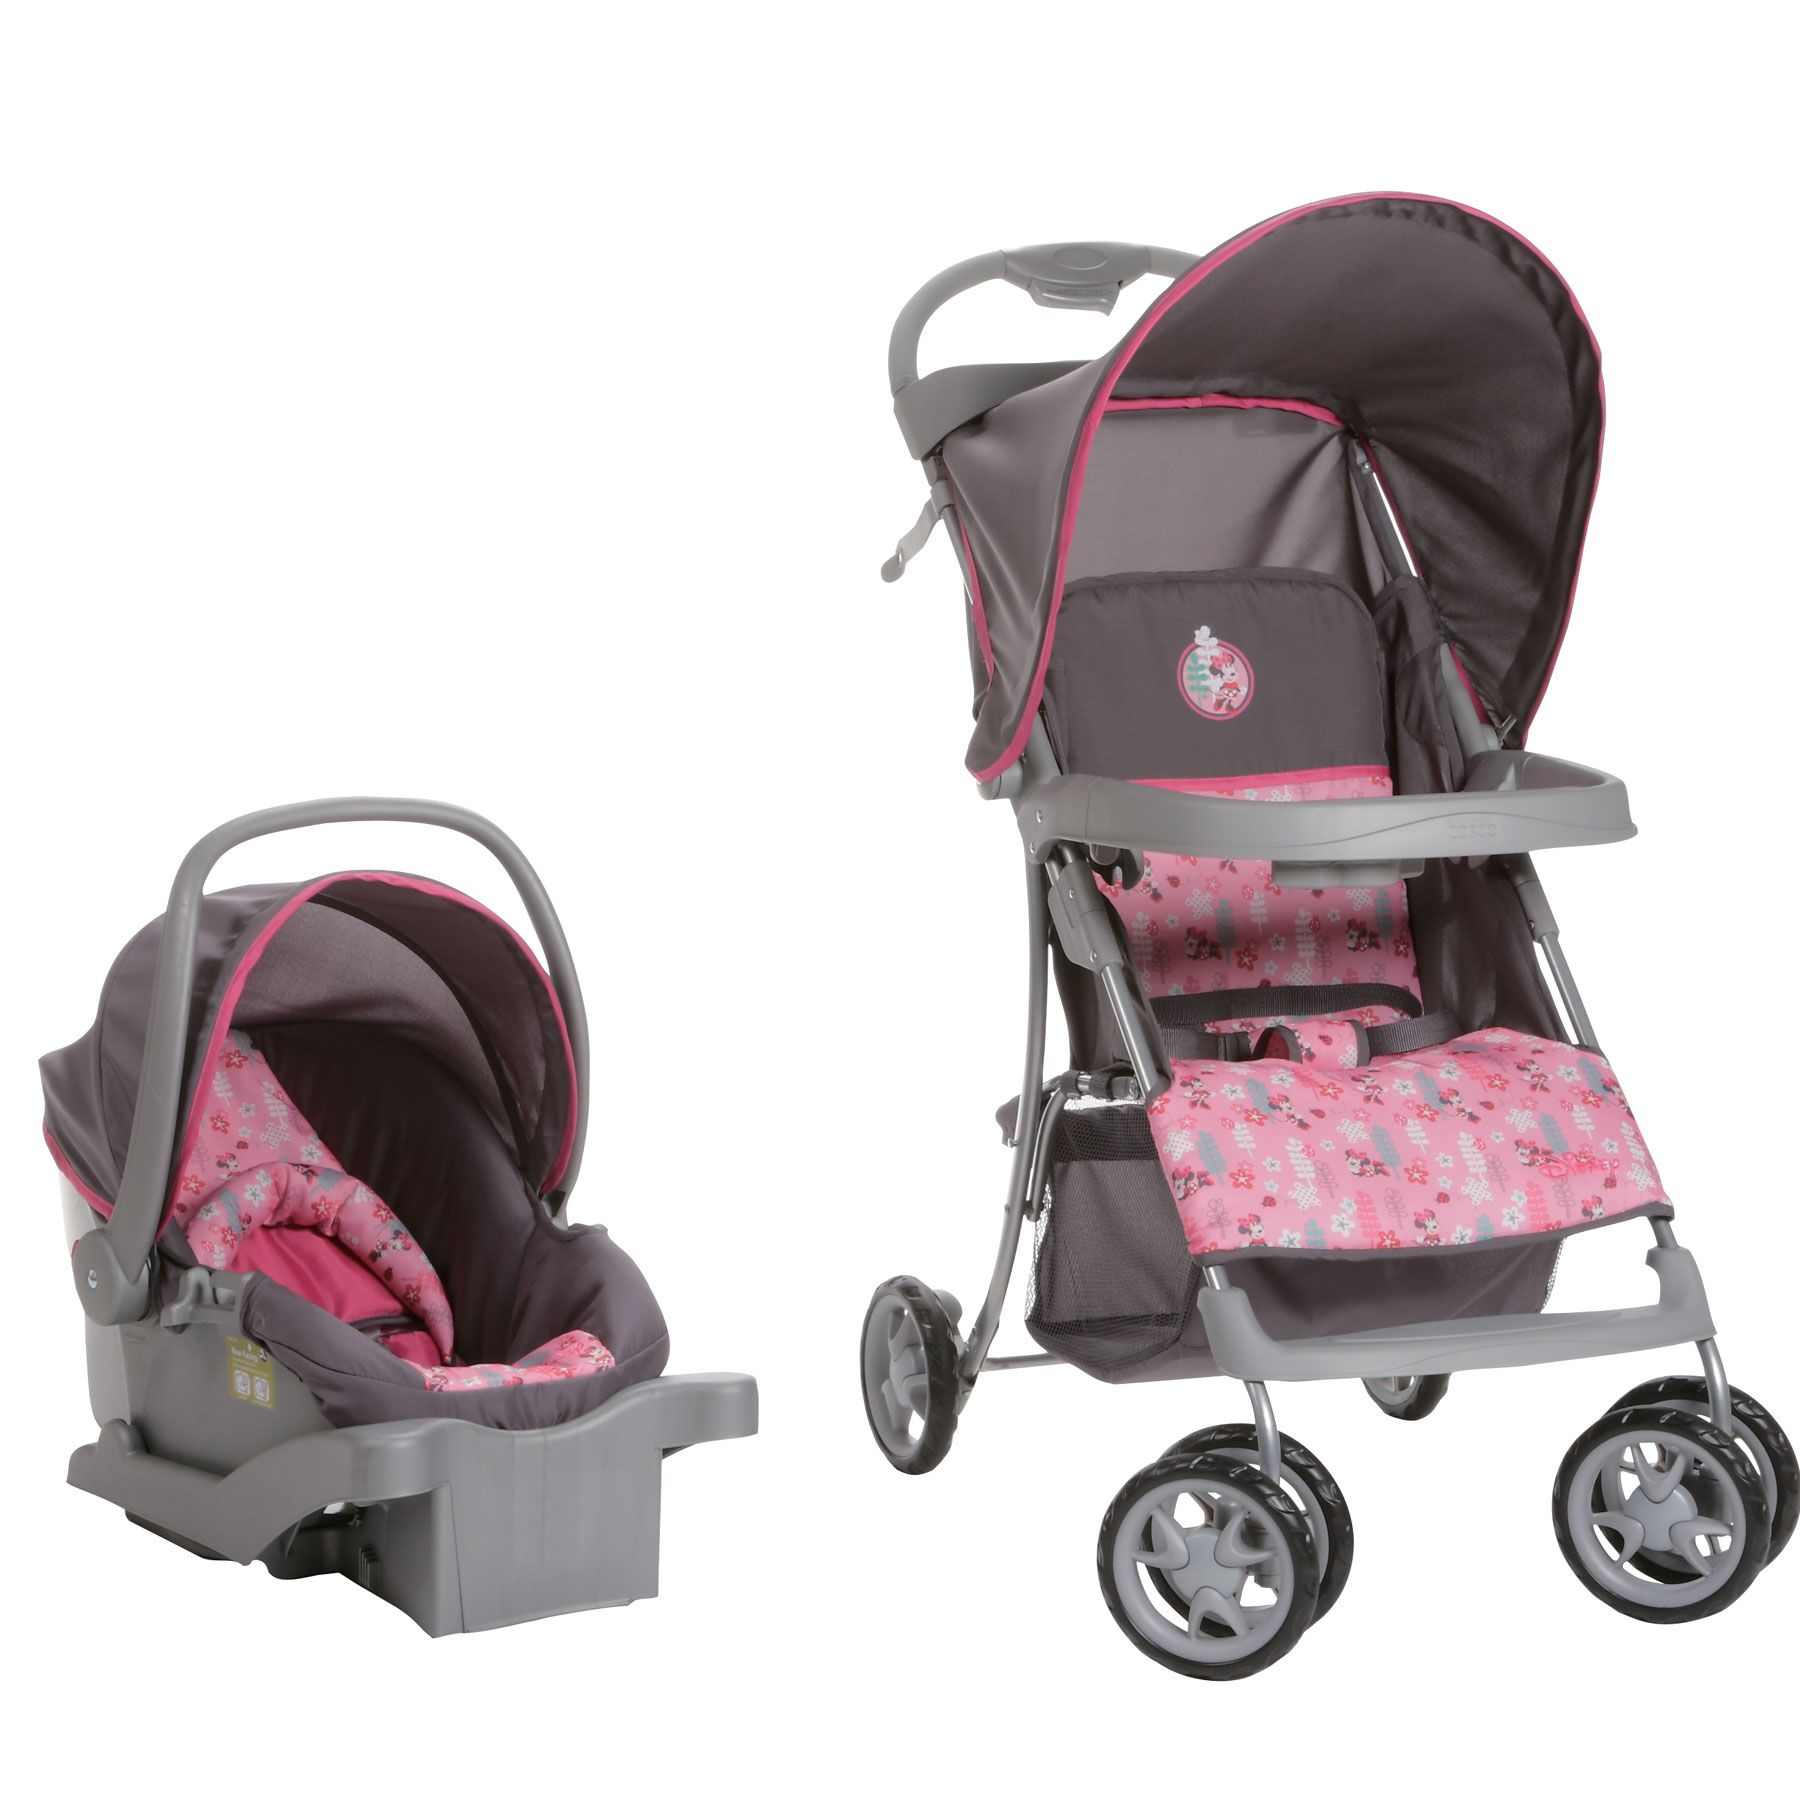 Minnie Mouse Infant Car Seat And Stroller This Pink And Gray Travel System Features A Minnie Mouse